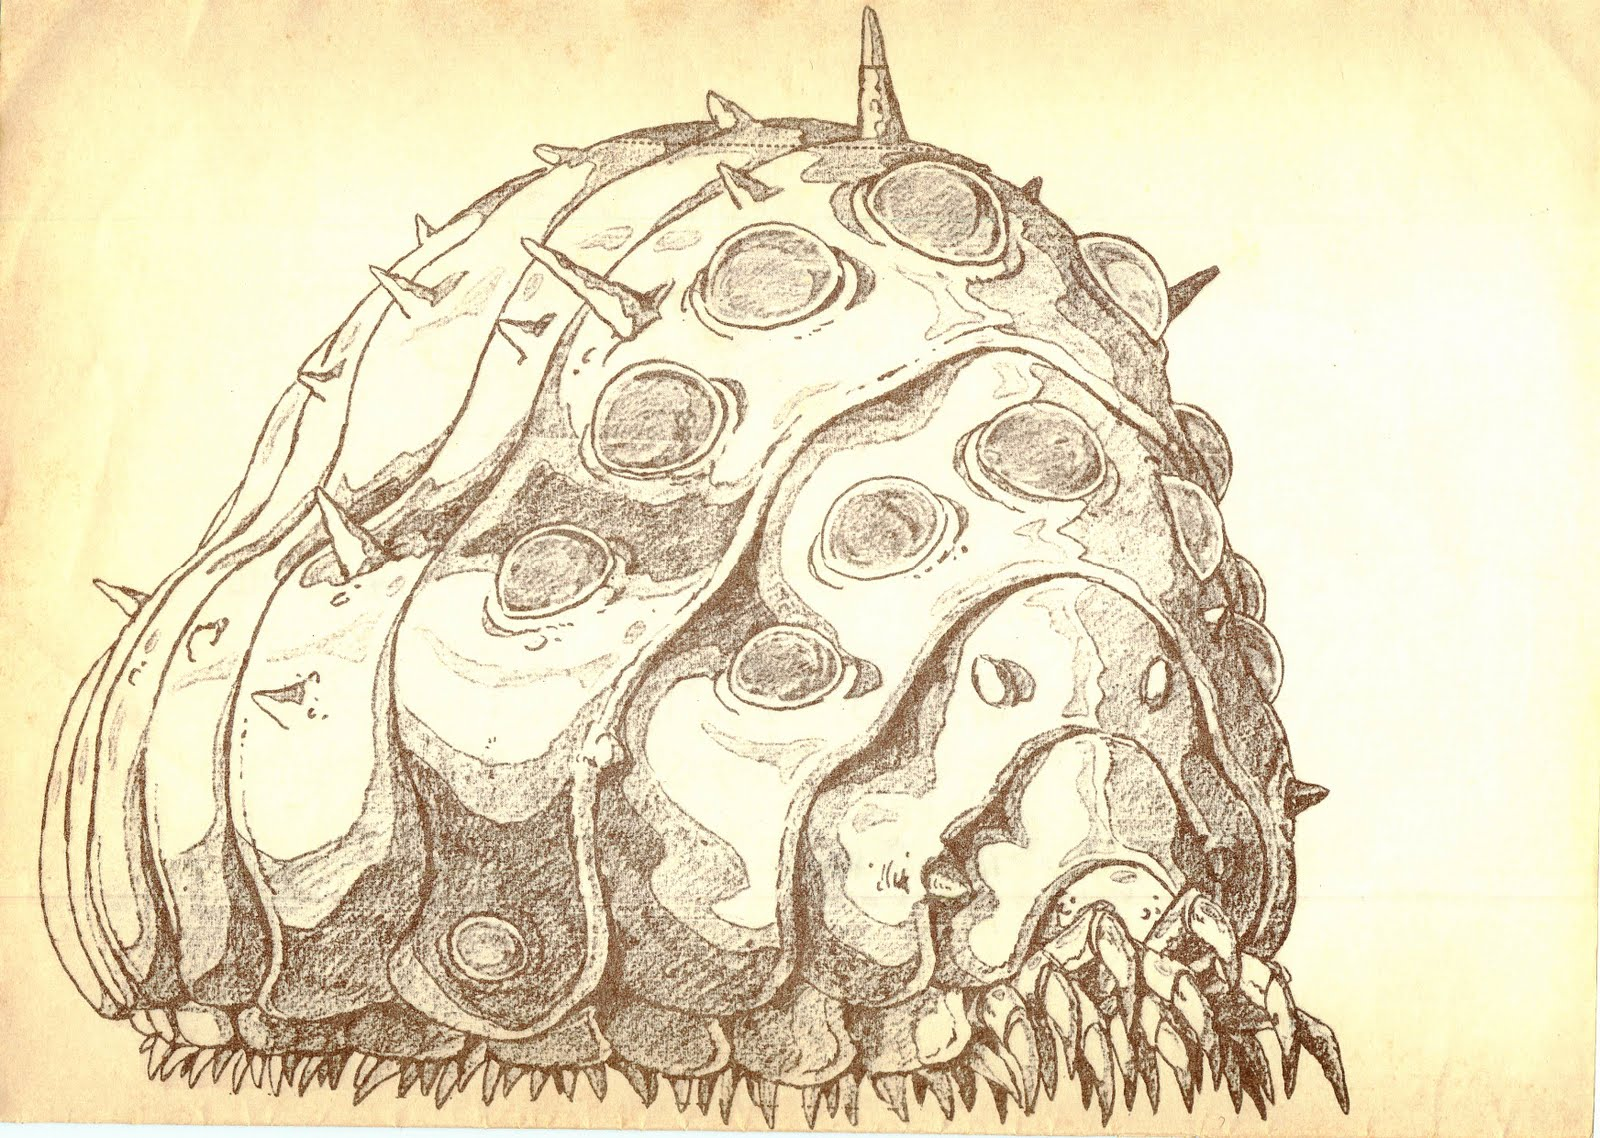 nausicaa_of_the_valley_of_the_wind_concept_art_character_13.jpg